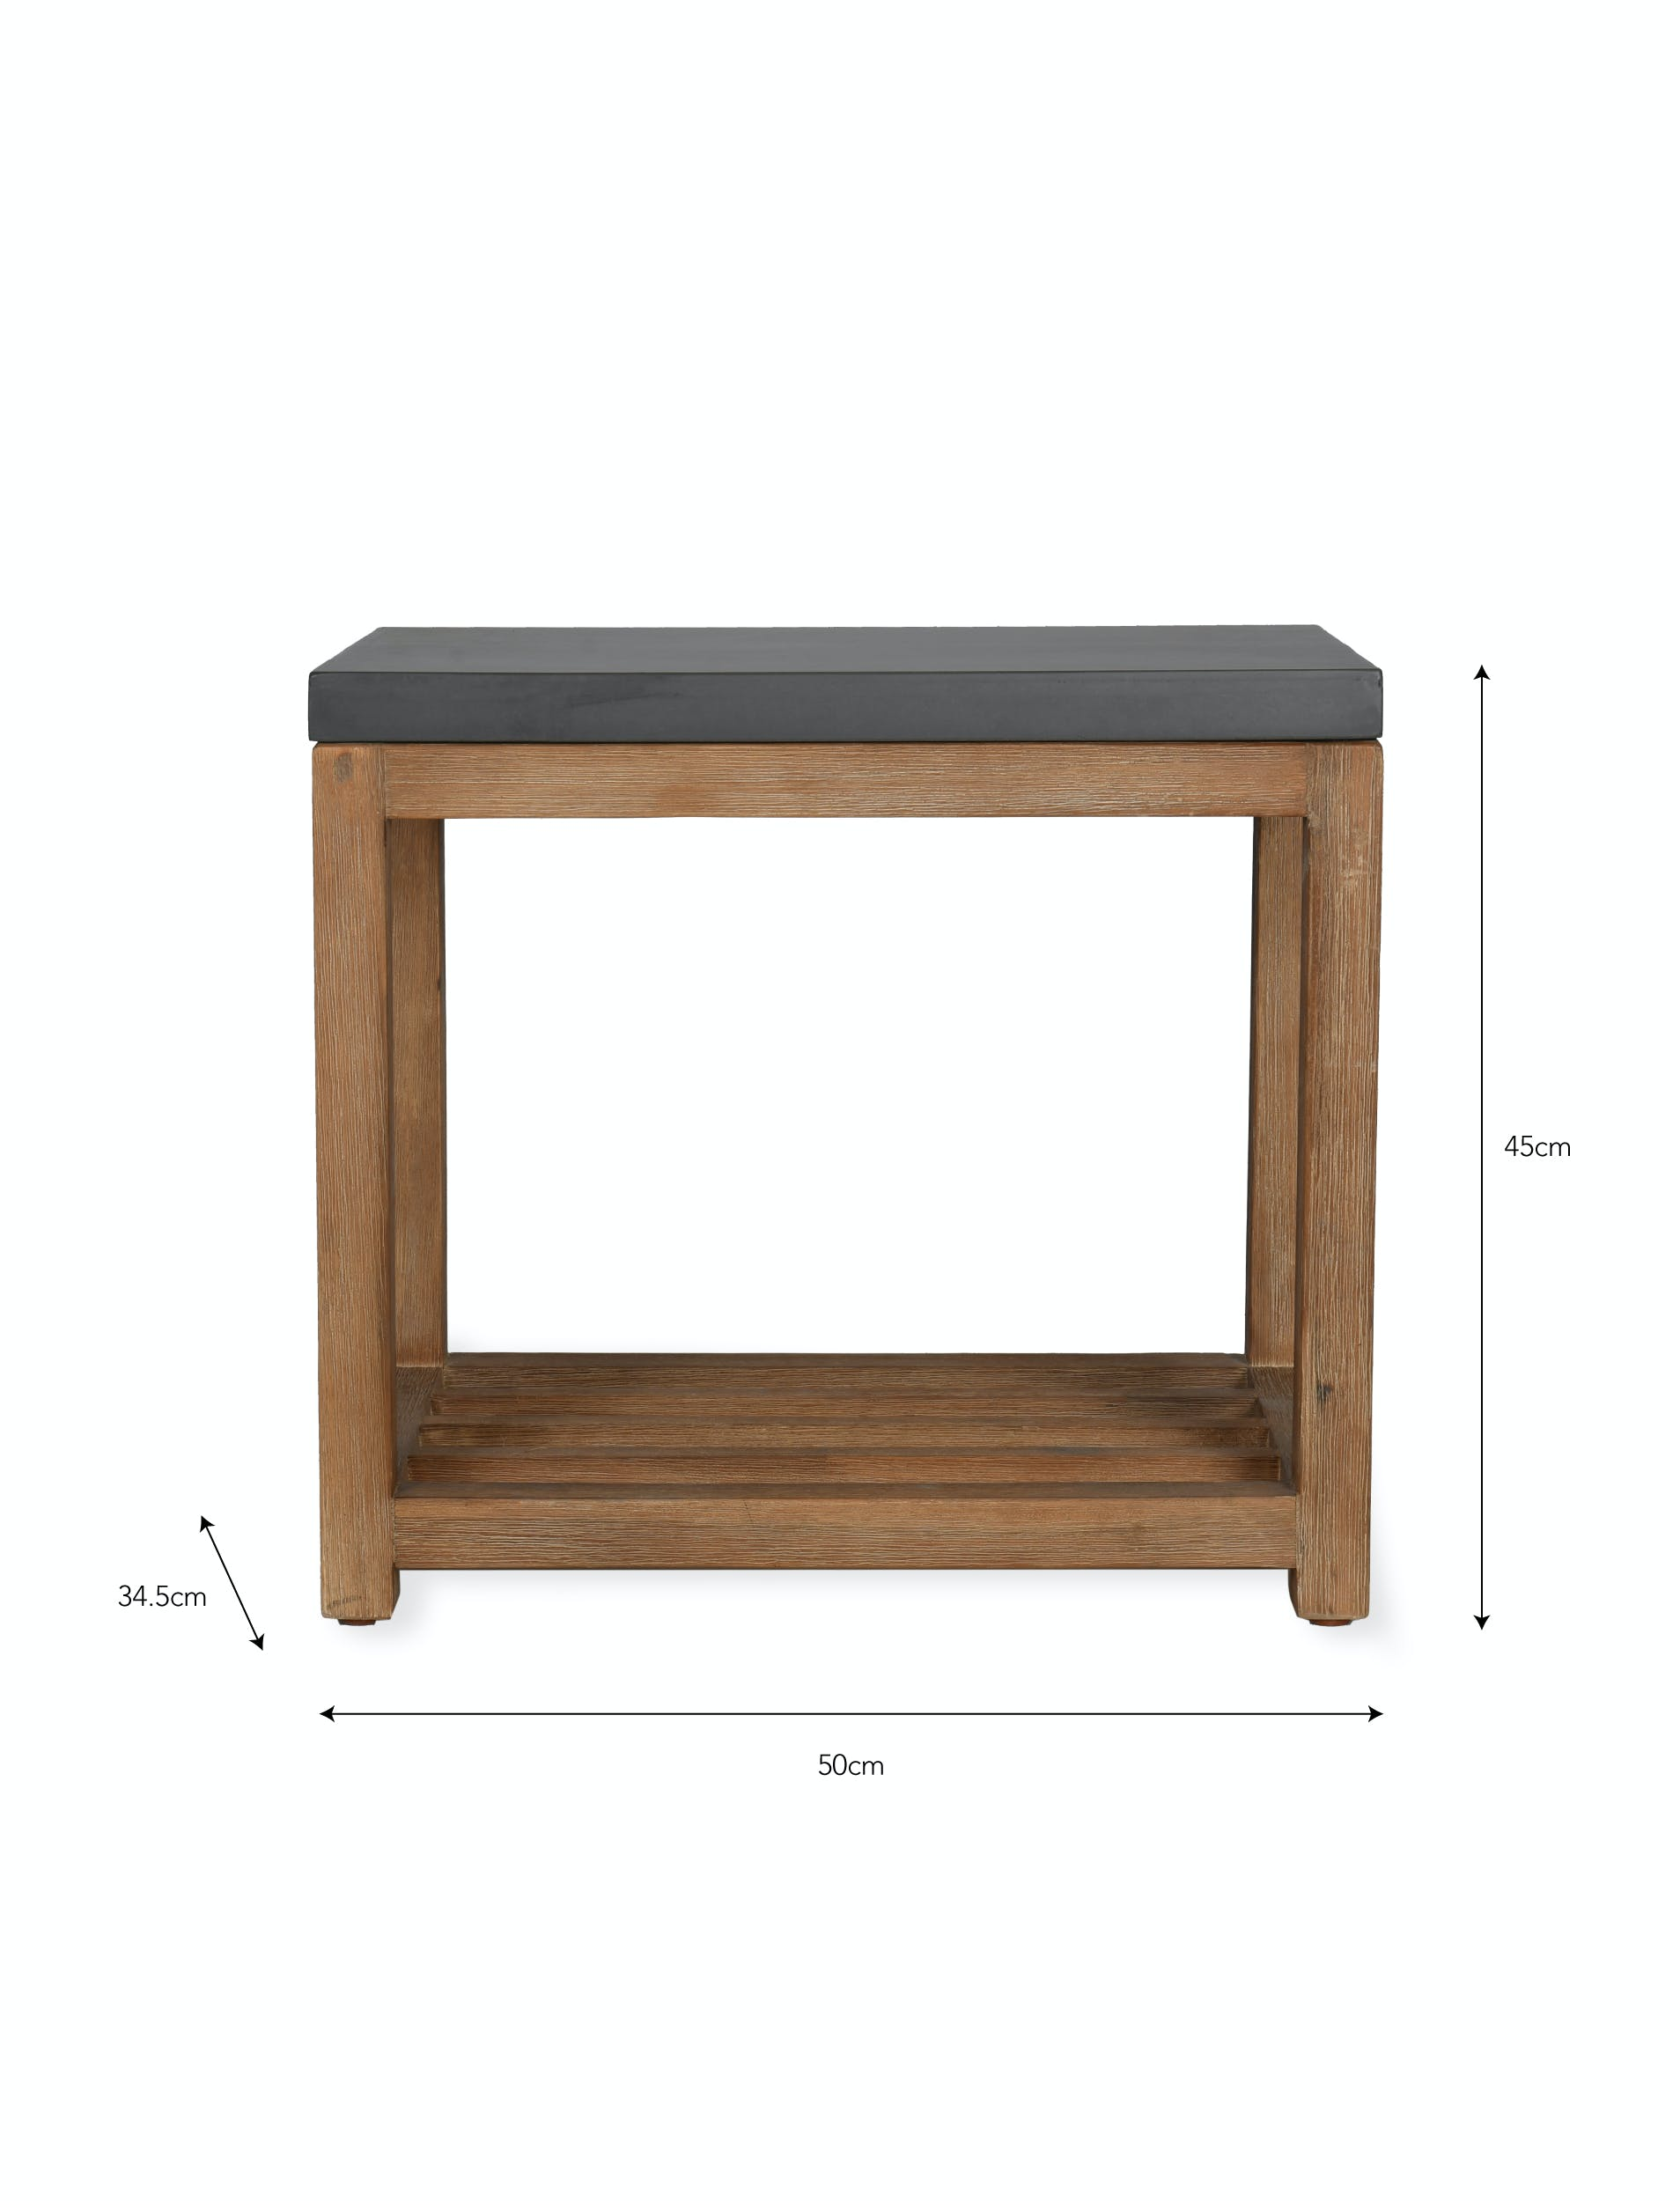 Cement and Acacia Wood Chilson Side Table with Shelf | Garden Trading